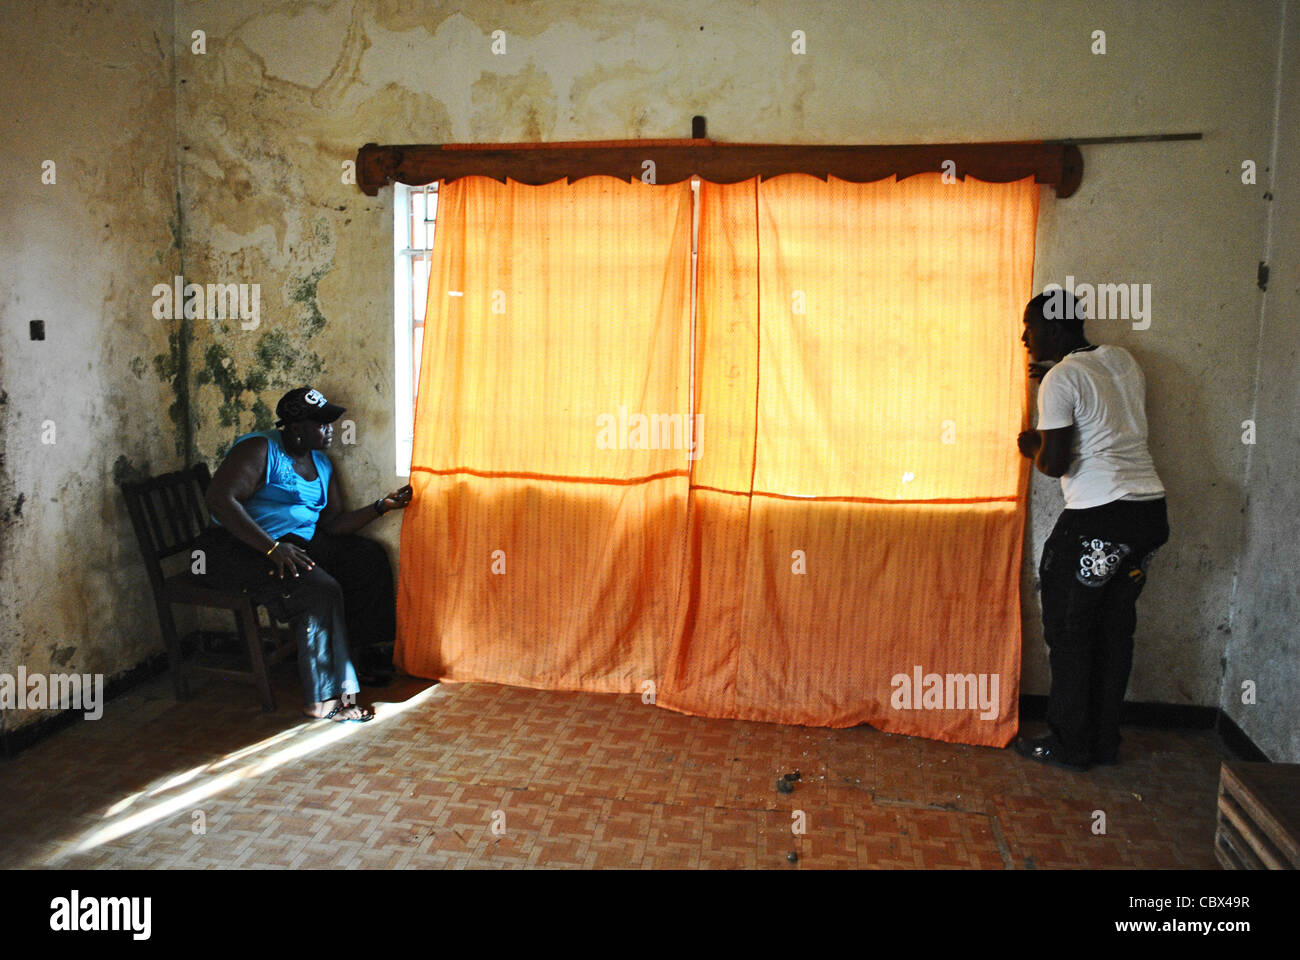 Civilians hide as gunfights continue in Bo, Sierra Leone, during clashes at a political rally ahead of 2012 elections - Stock Image